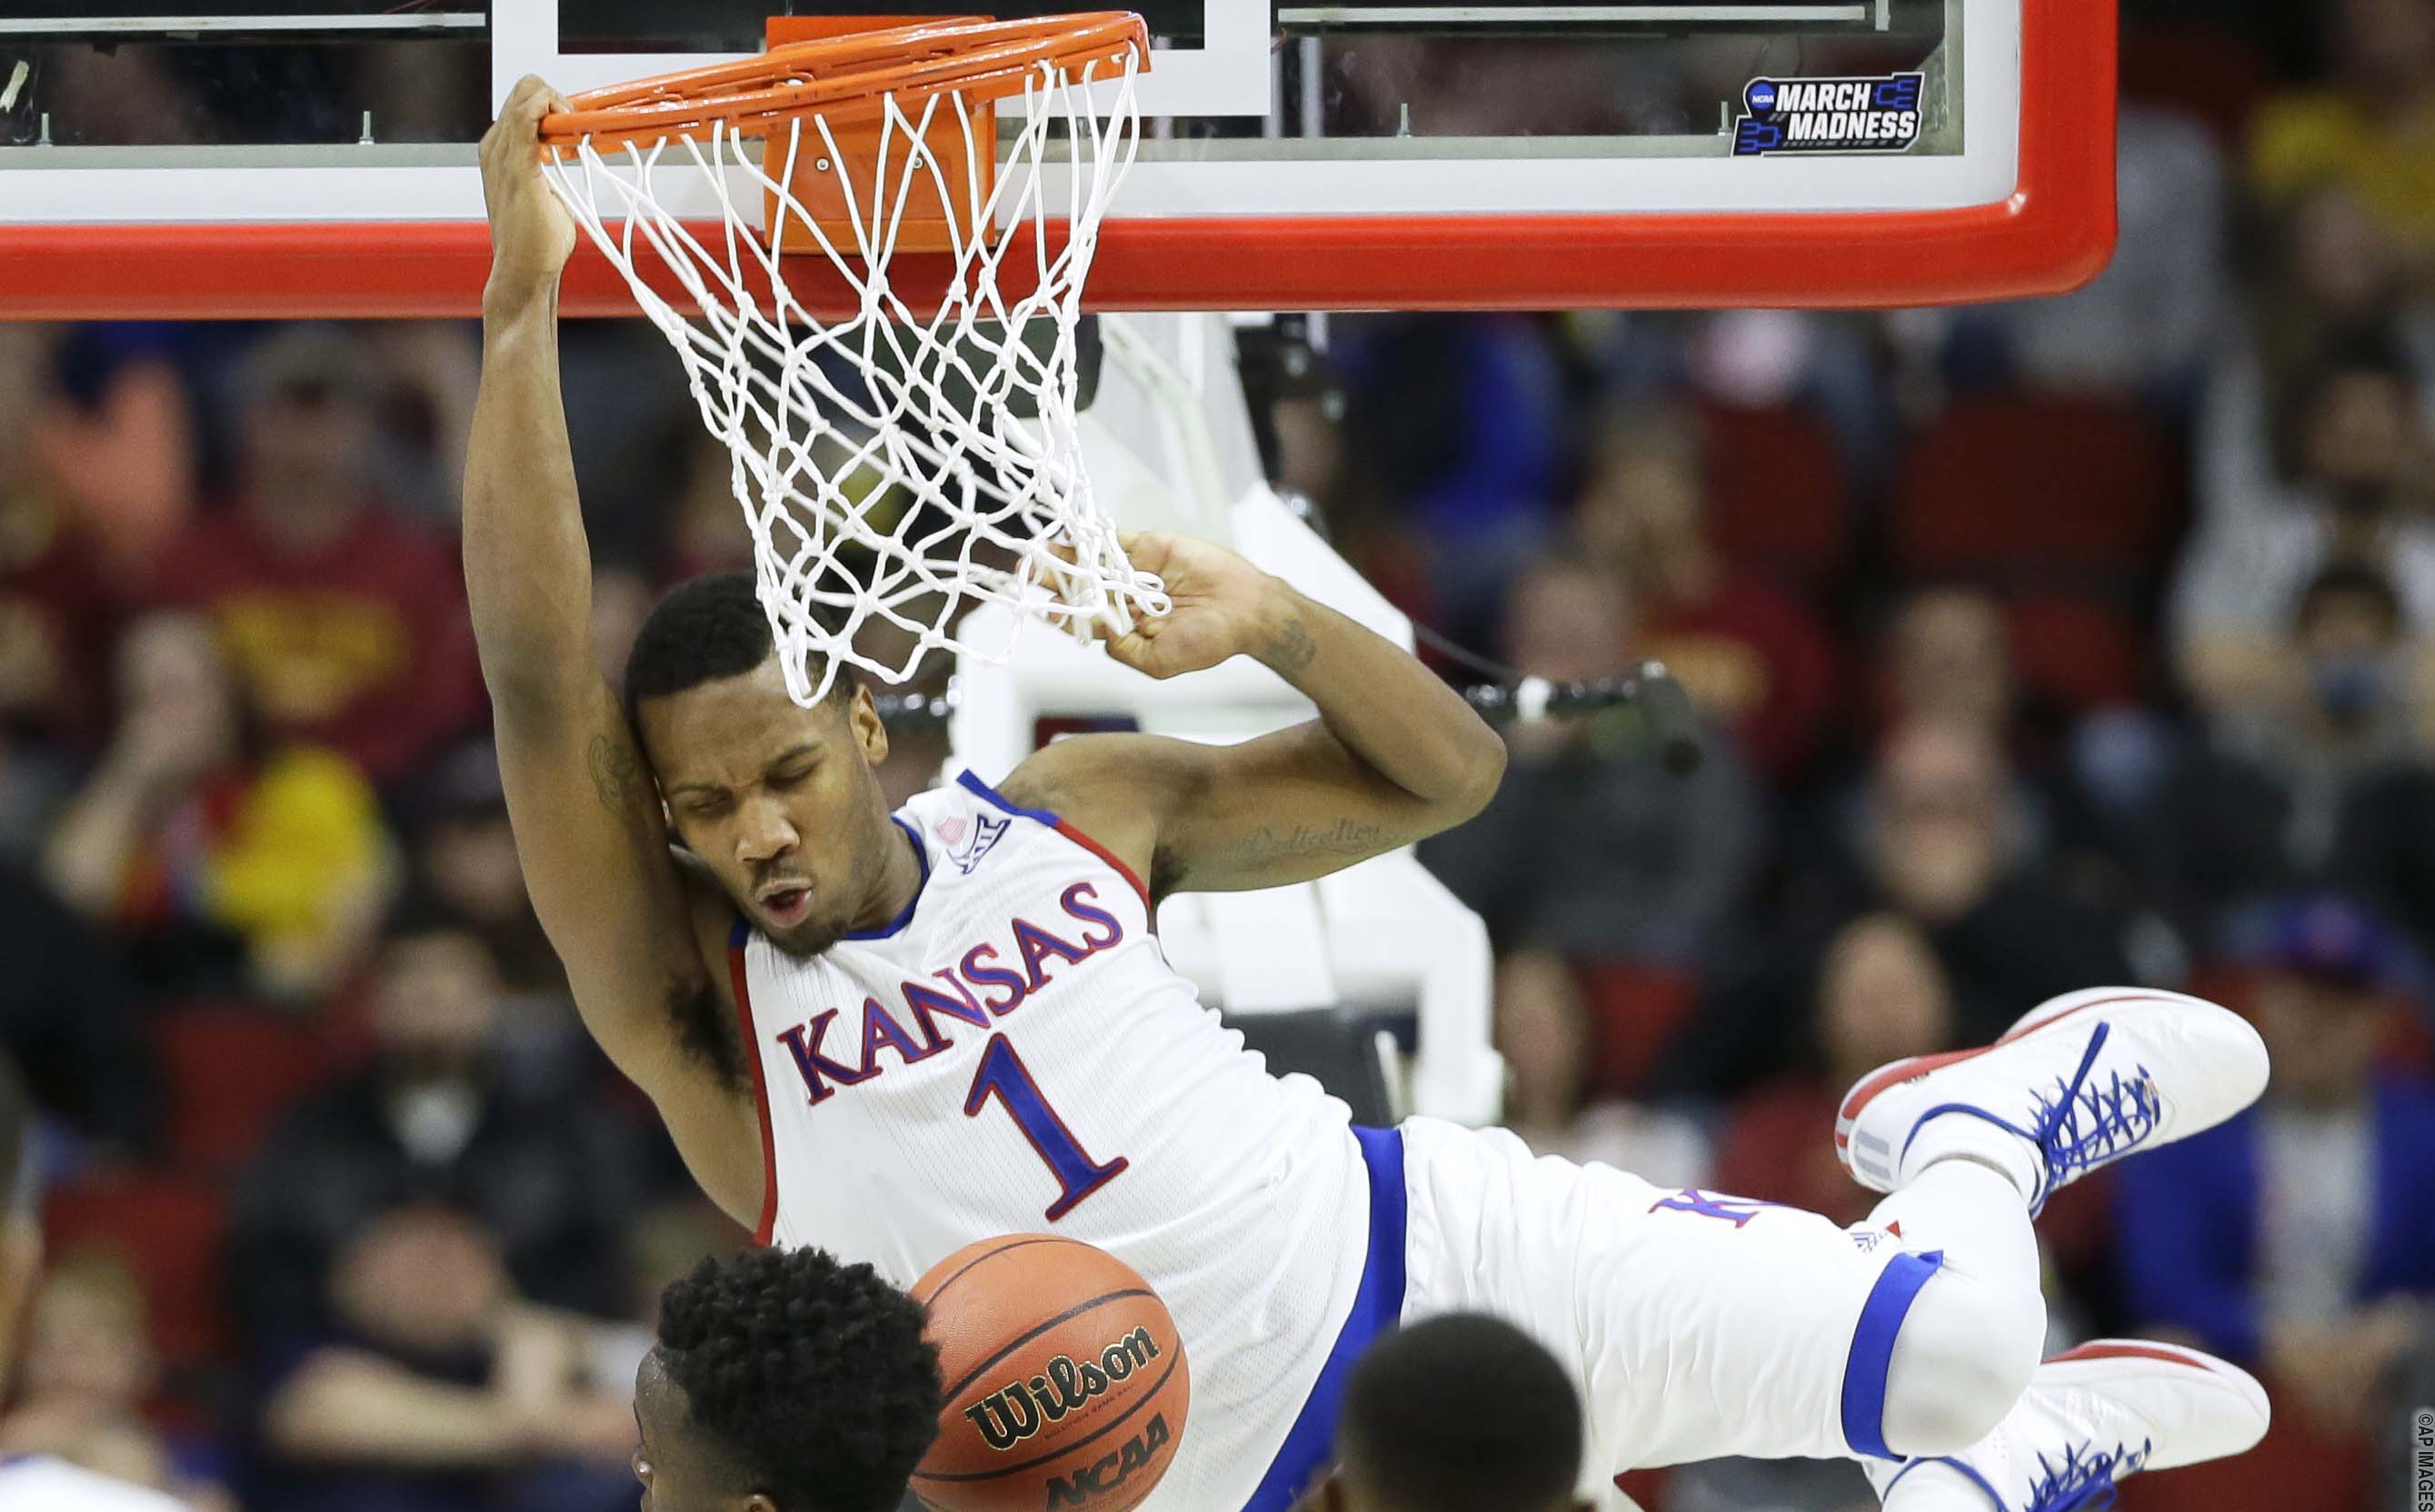 Kansas guard Wayne Selden Jr. (1) dunks during the second half of a second-round men's college basketball game against Connecticut in the NCAA Tournament, Saturday, March 19, 2016, in Des Moines, Iowa. Kansas won 73-61. (AP Photo/Charlie Neibergall)